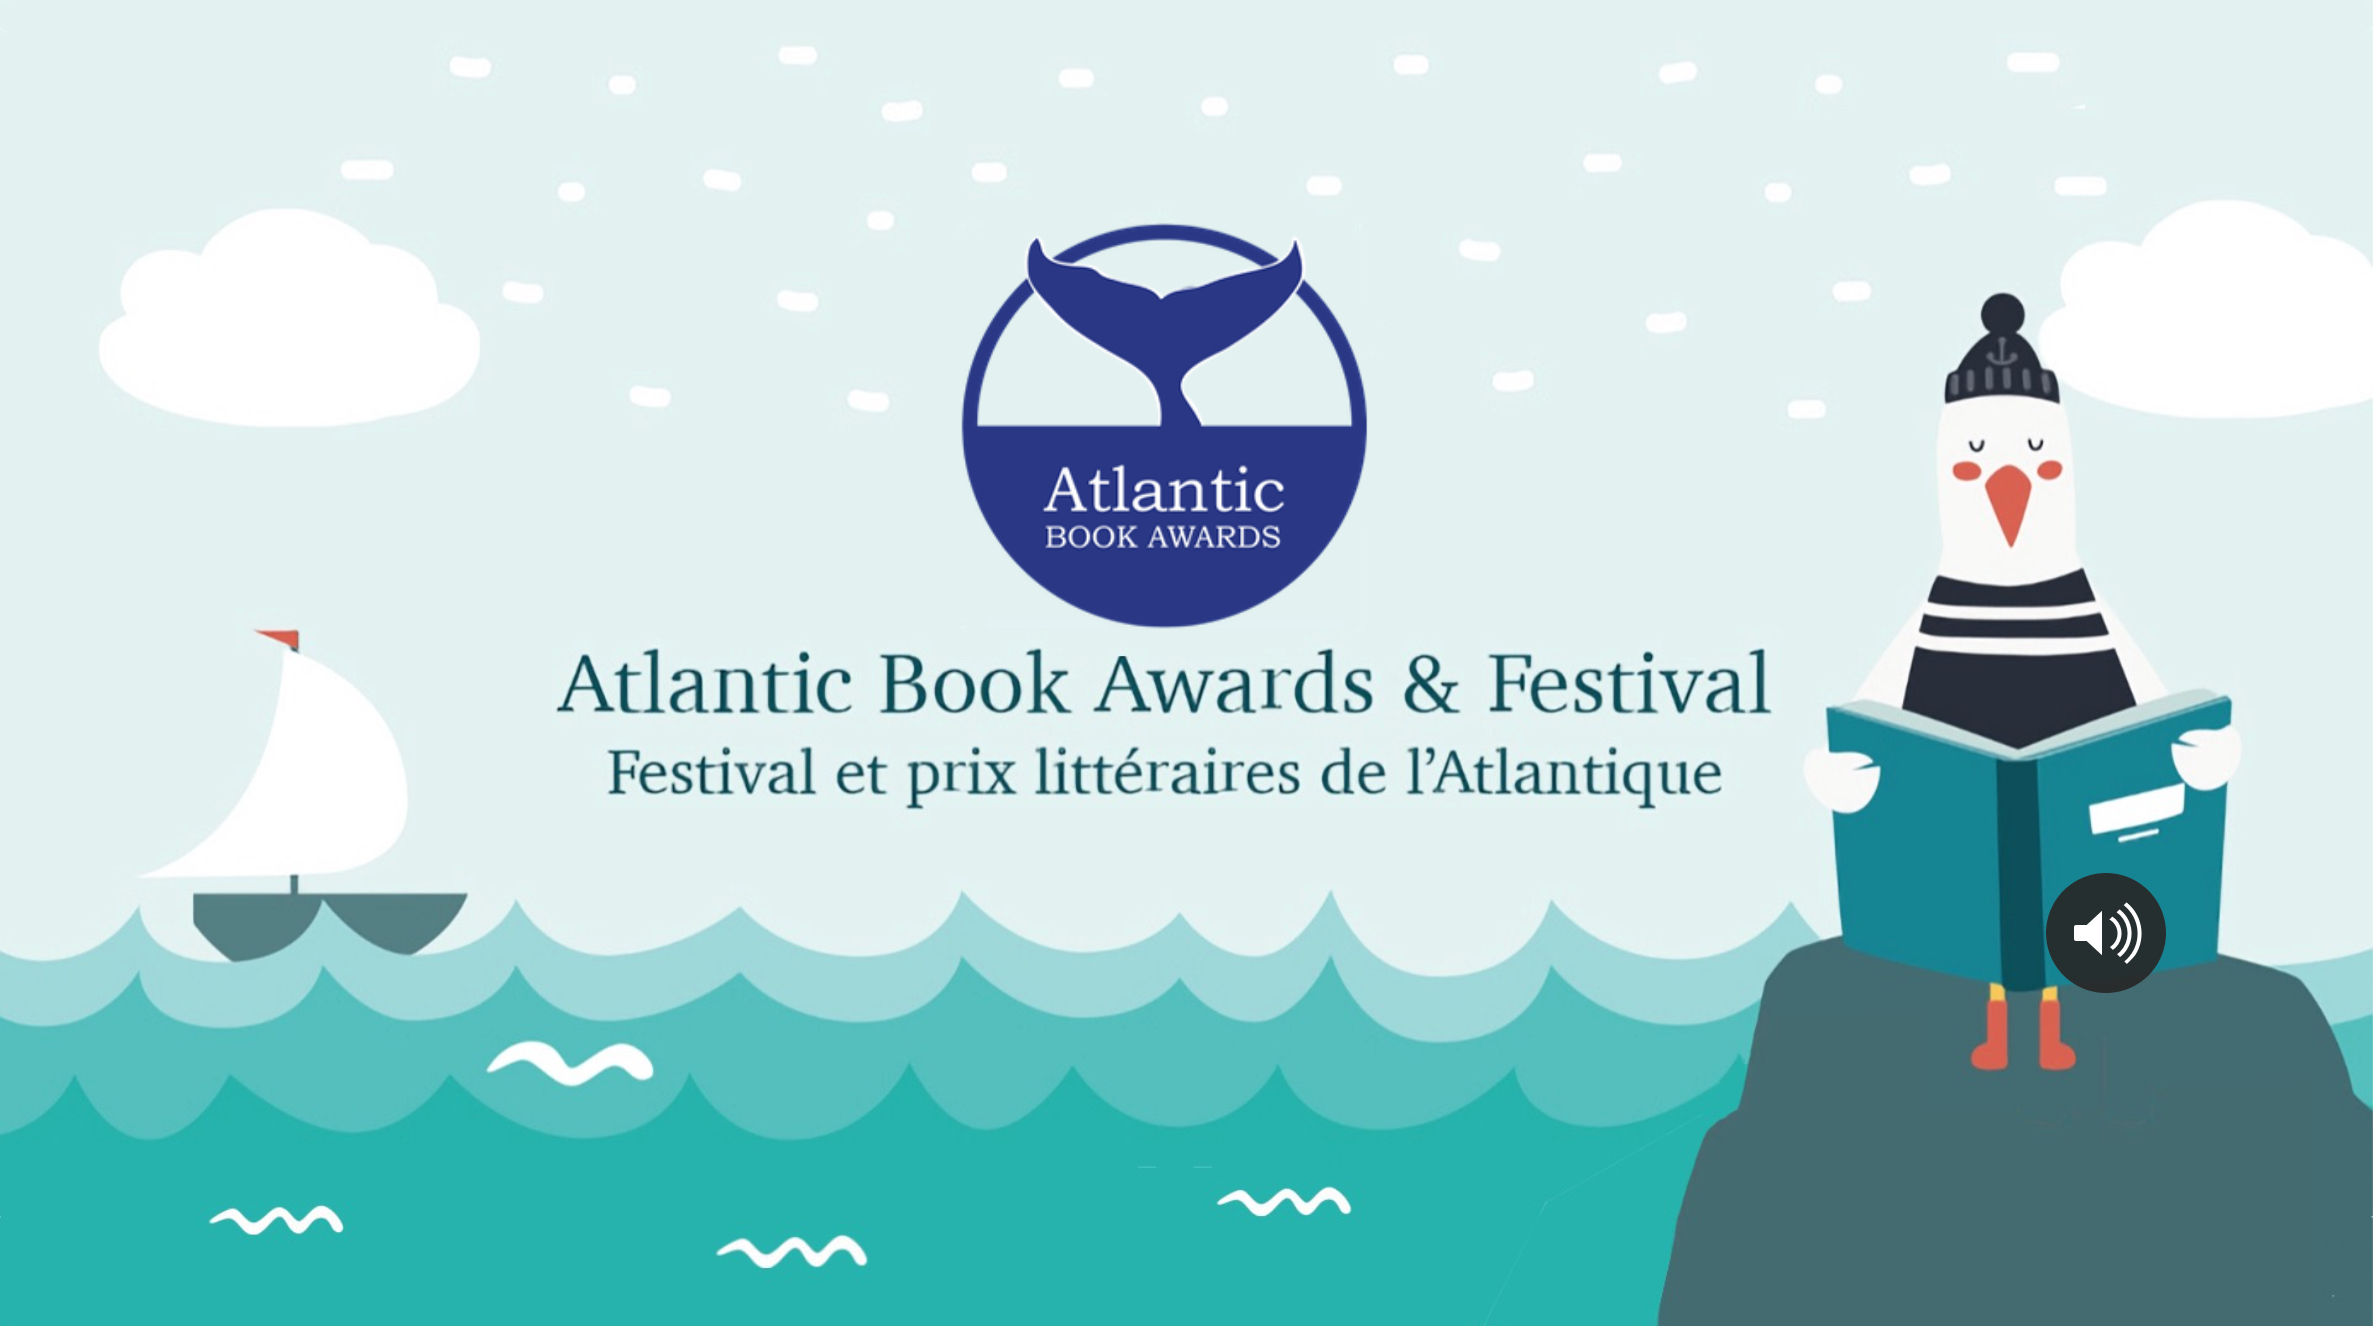 Atlantic Book Awards online gala.